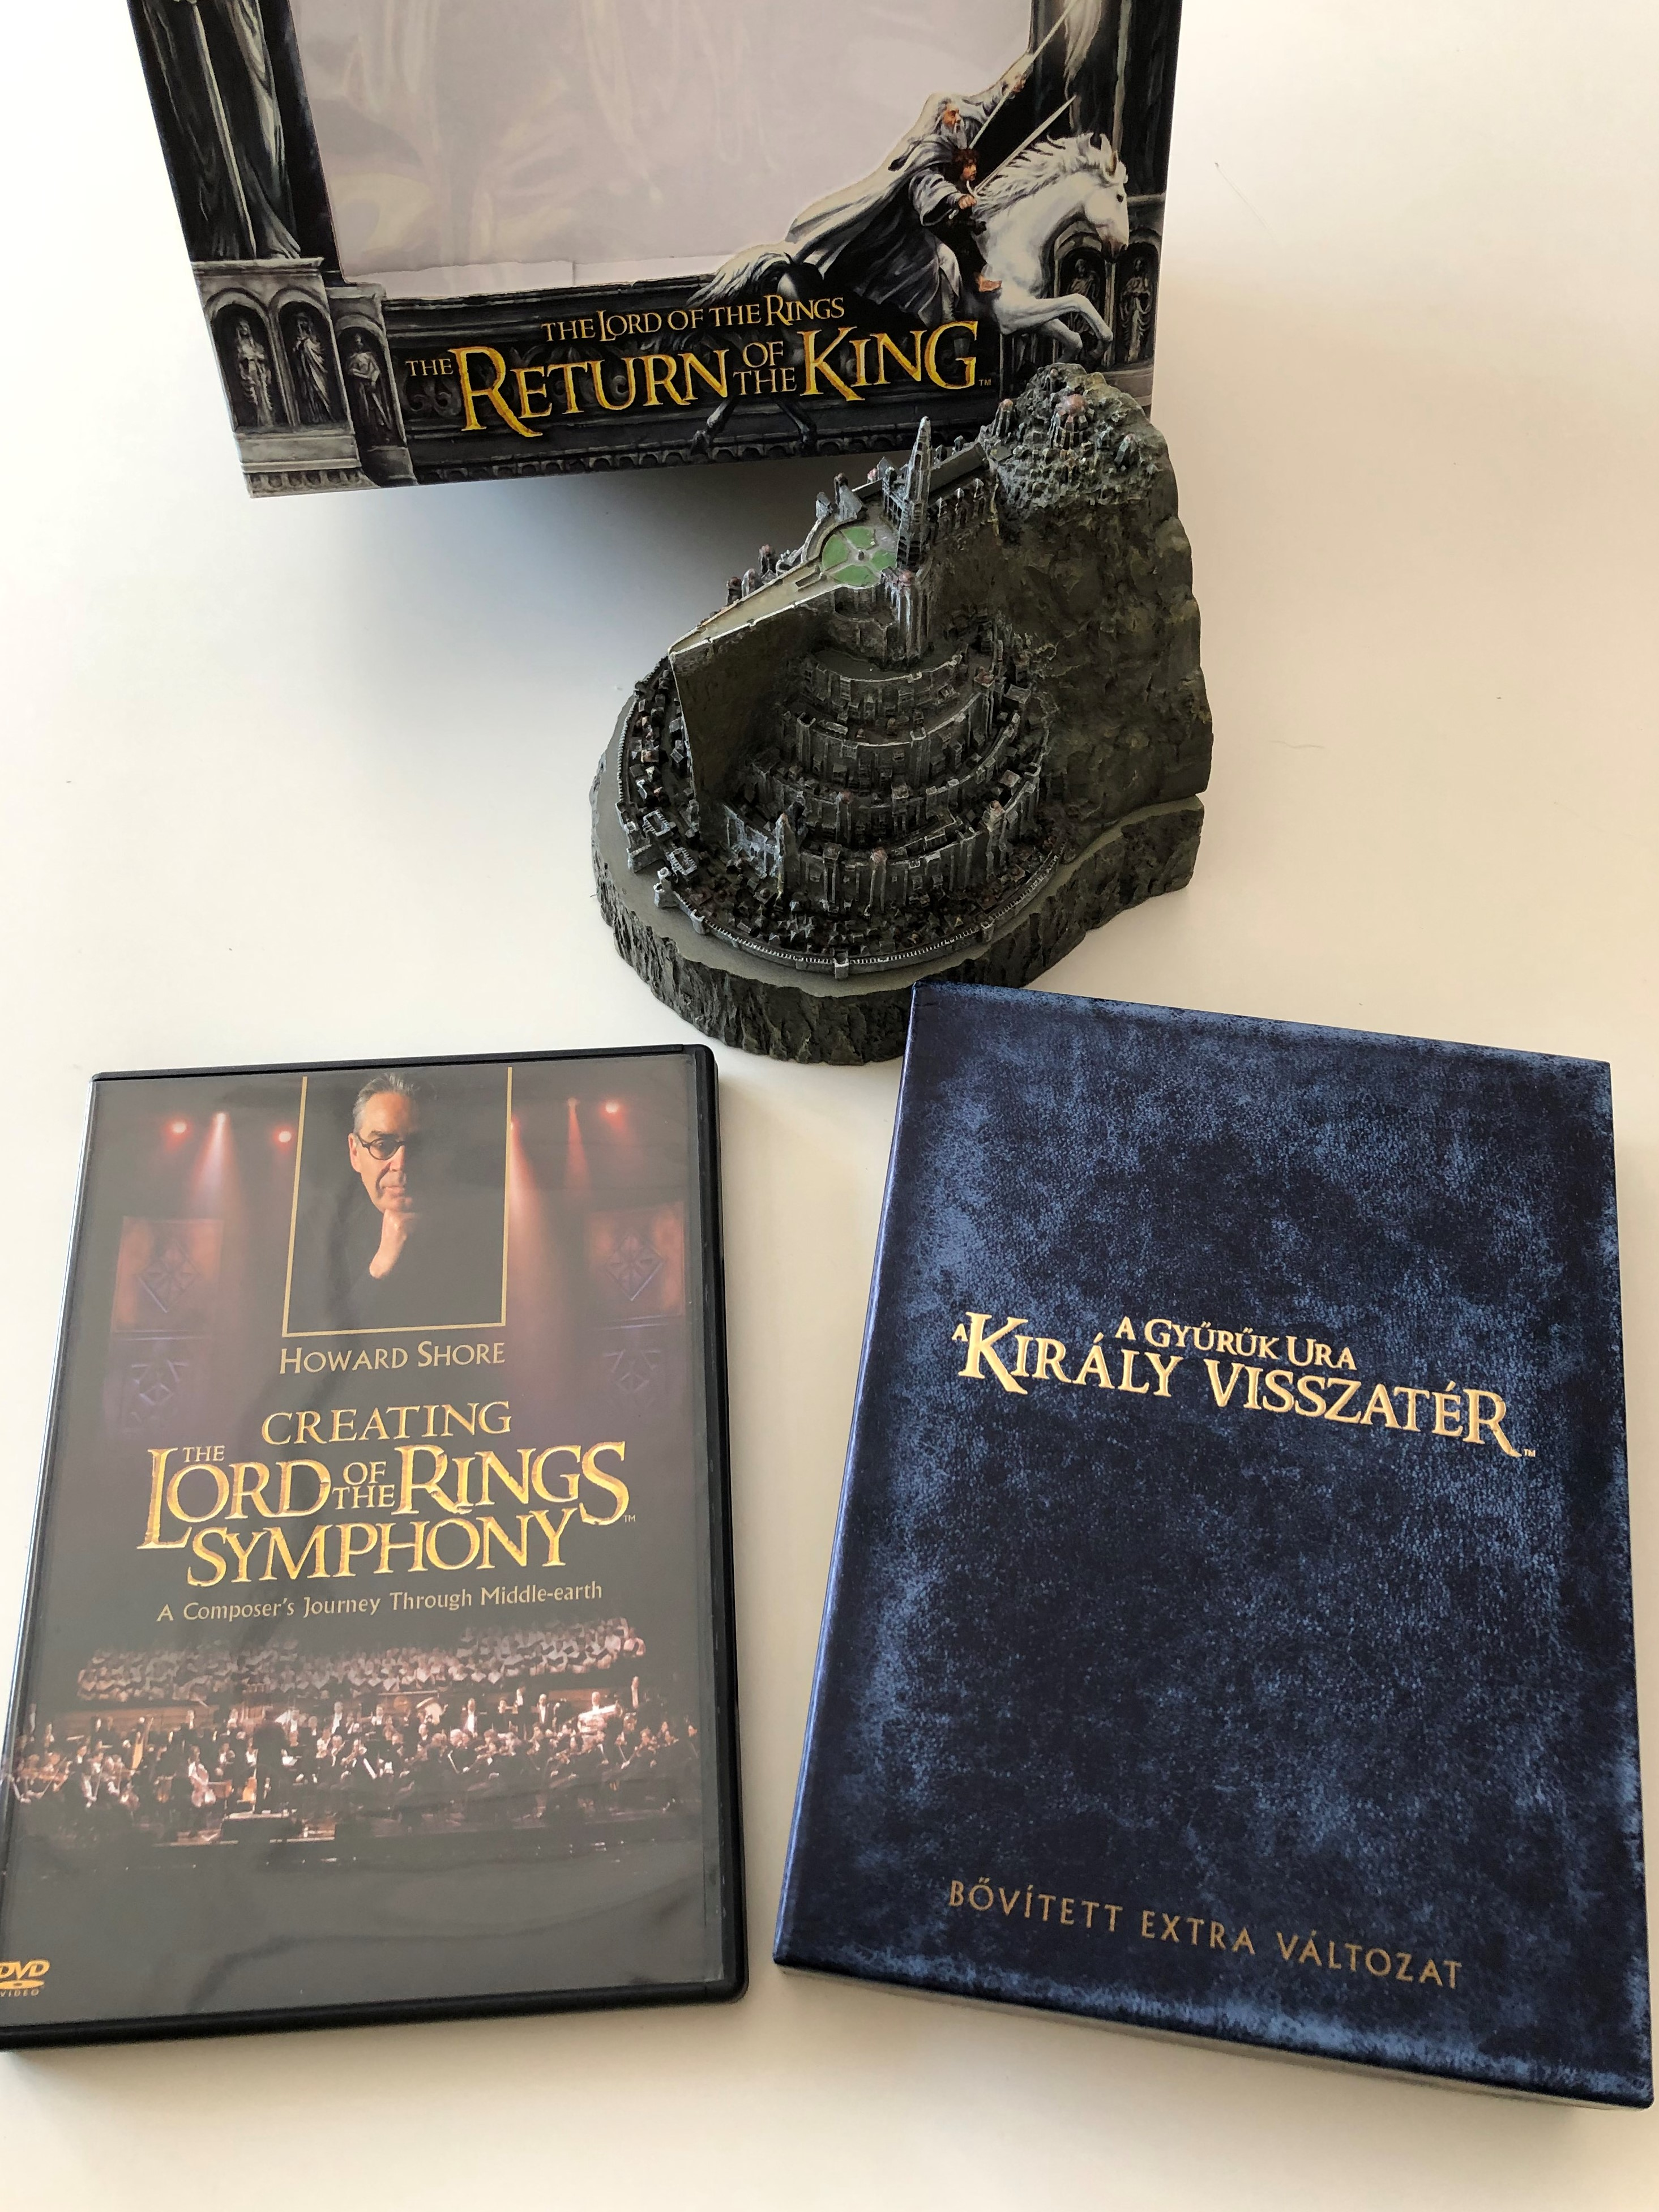 the-lord-of-the-rings-the-return-of-the-king-collector-s-dvd-2003-gift-set-29.jpg